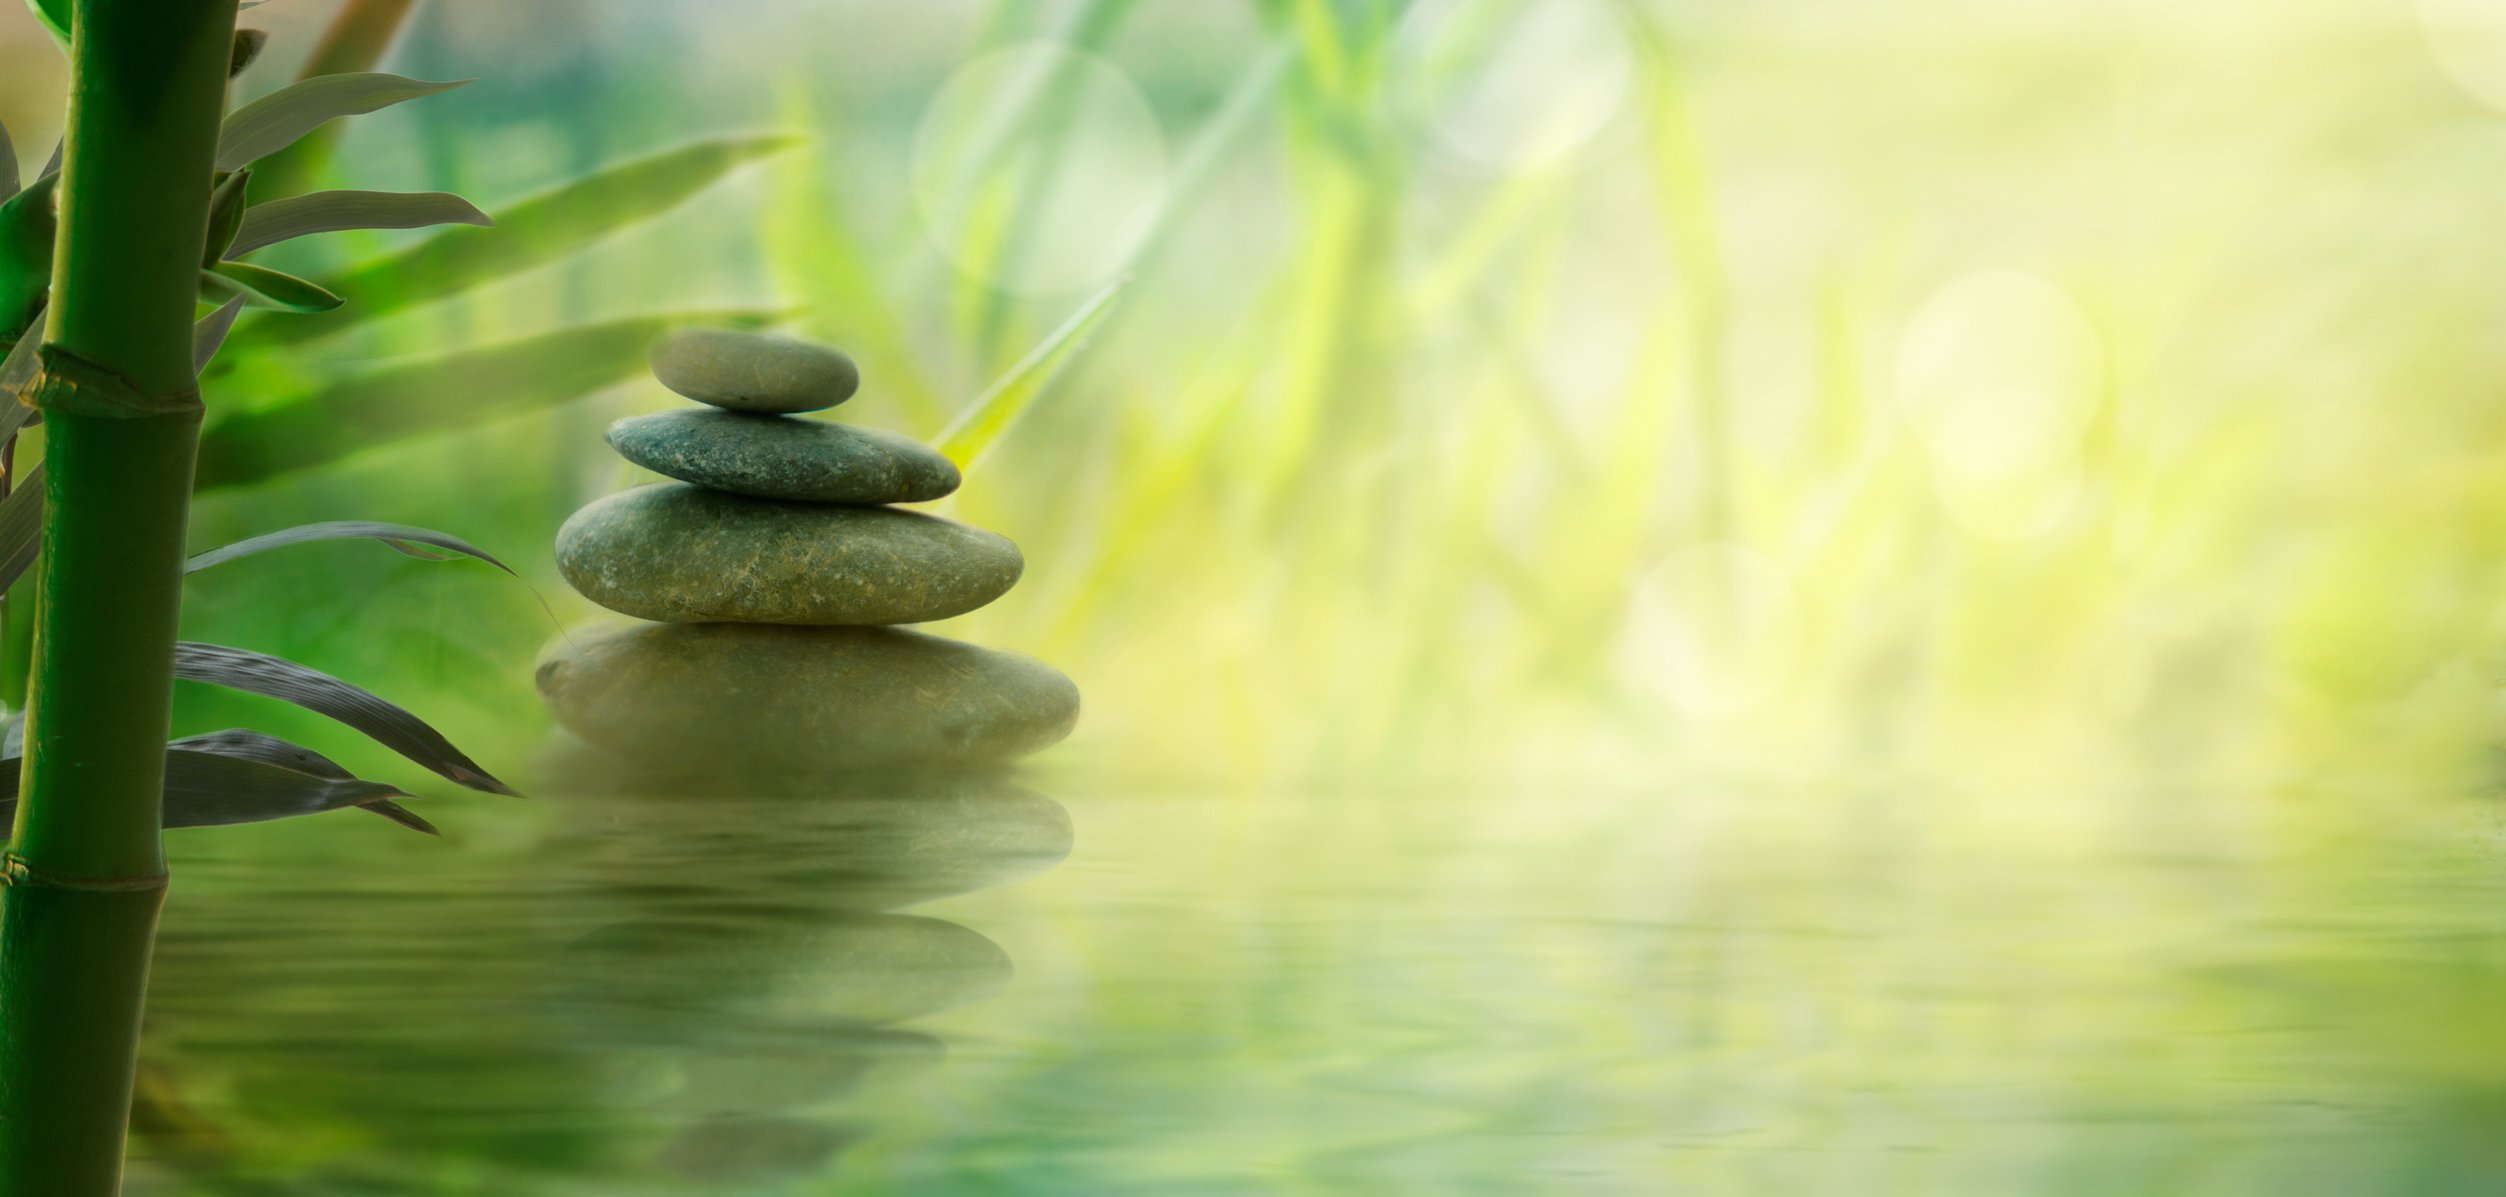 Peaceful scene of stones and water